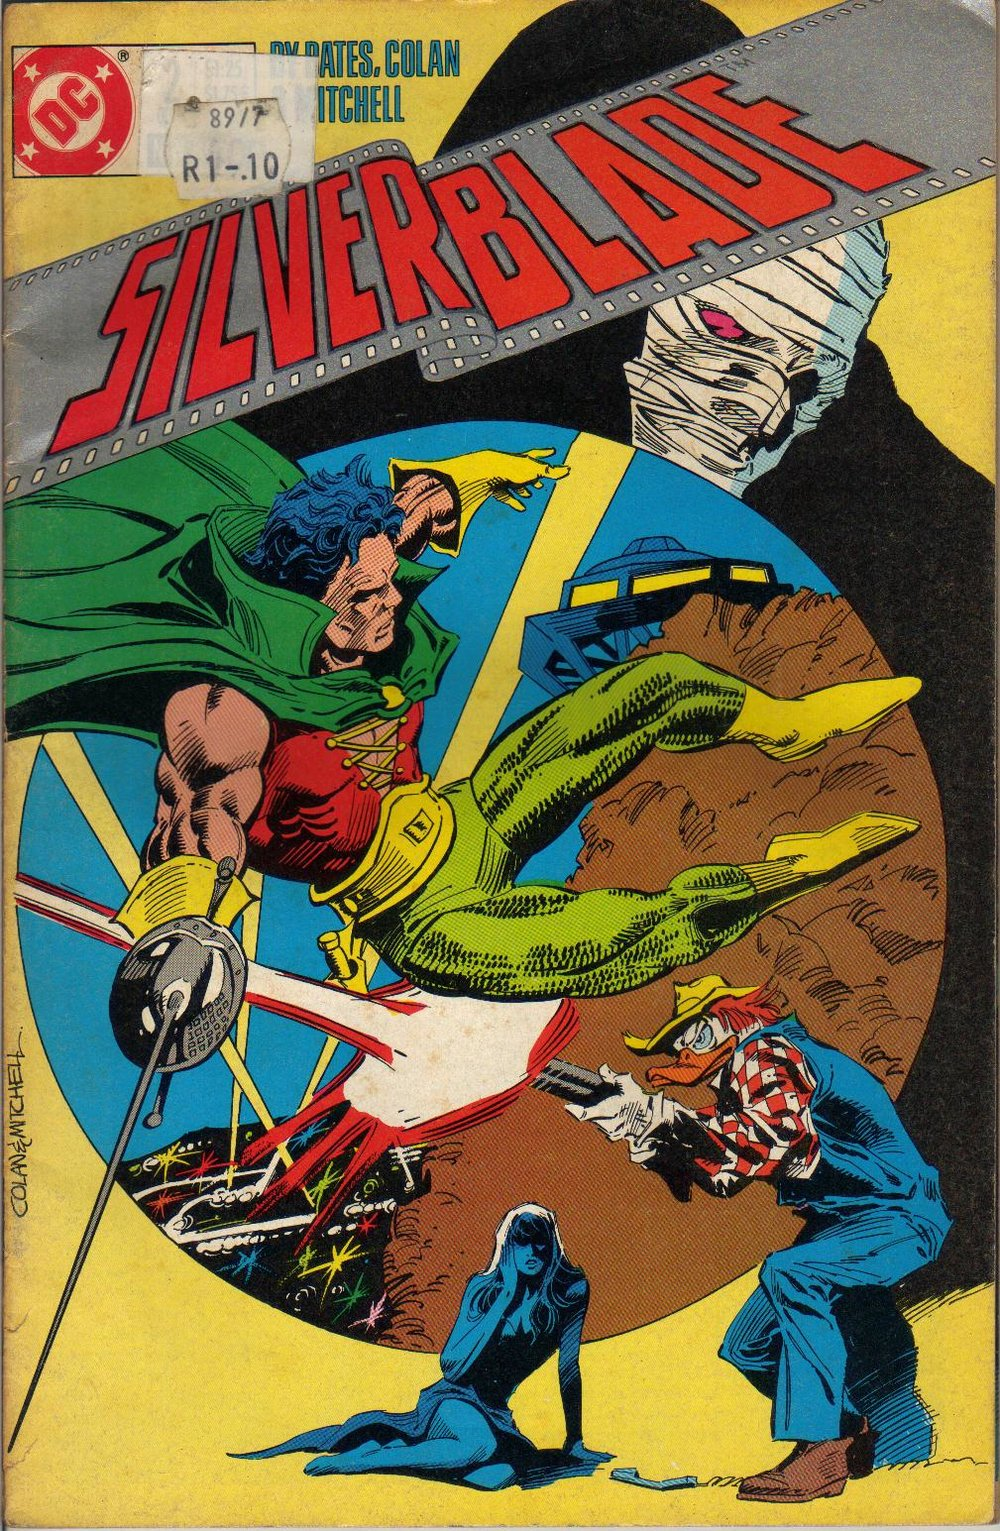 Silverblade (1987) #2, cover penciled by Gene Colan & inked by Steve Mitchell.